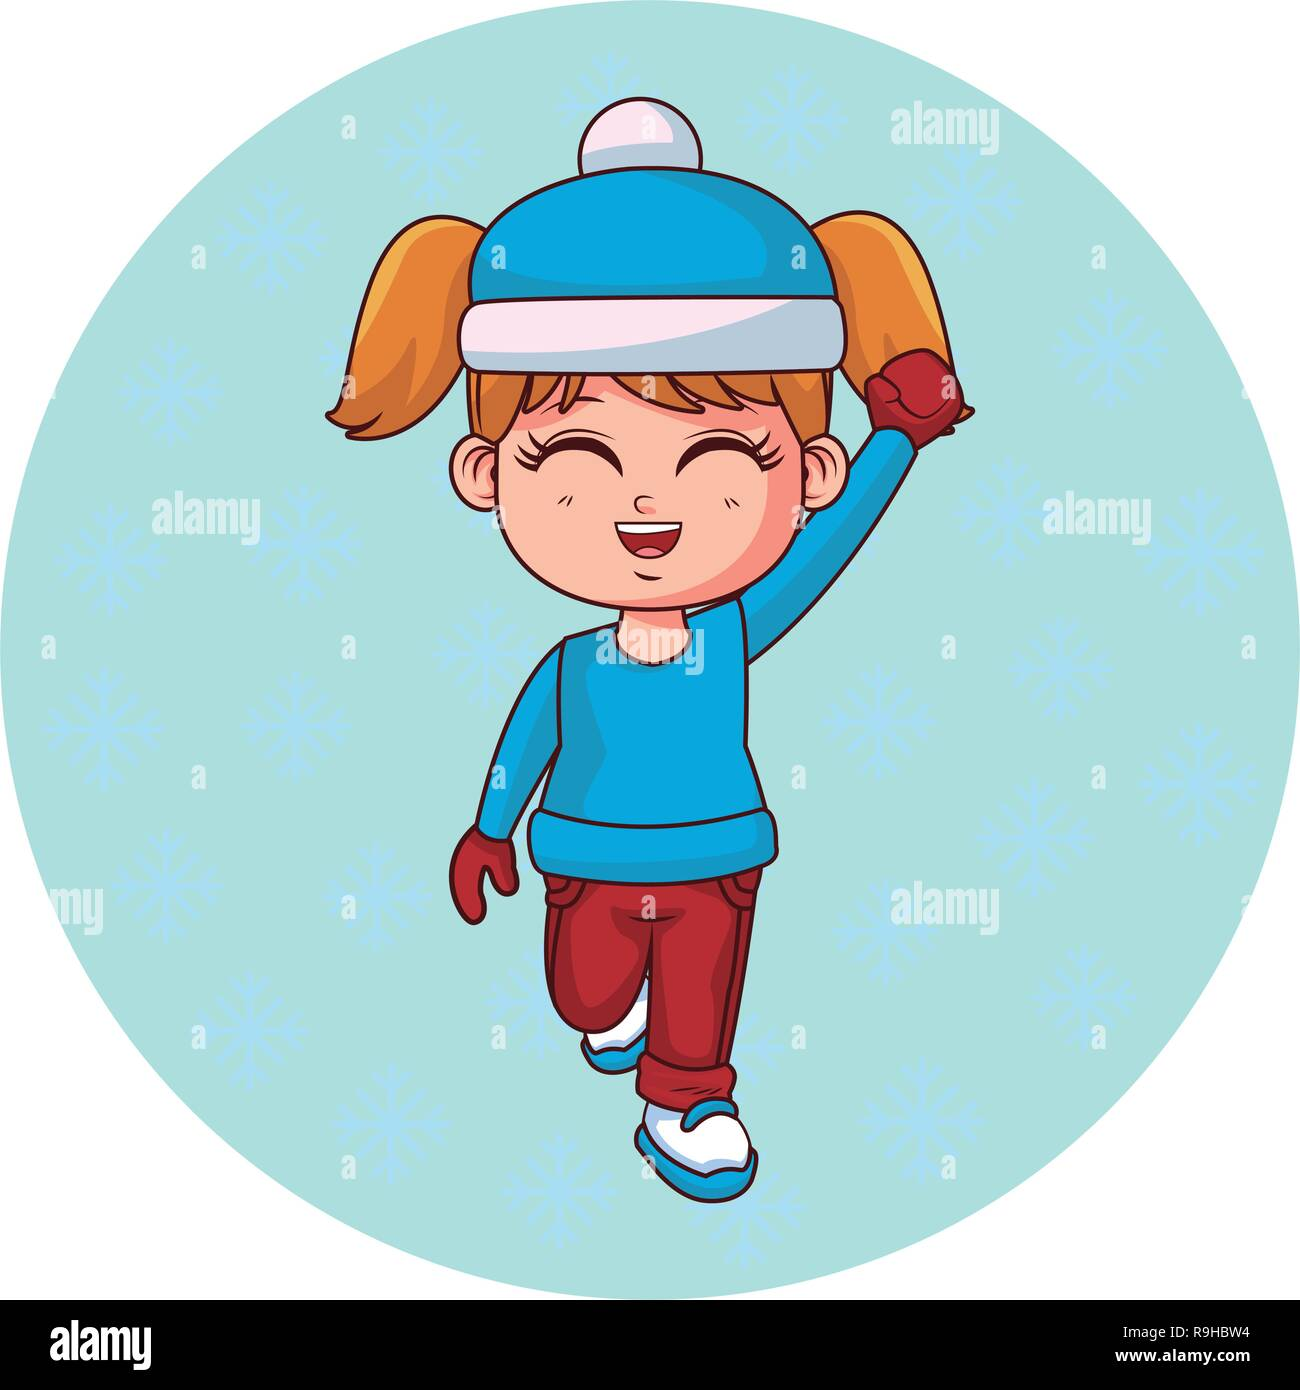 6910998bbb4c7 Girl with winter clothes cartoon Stock Vector Art   Illustration ...